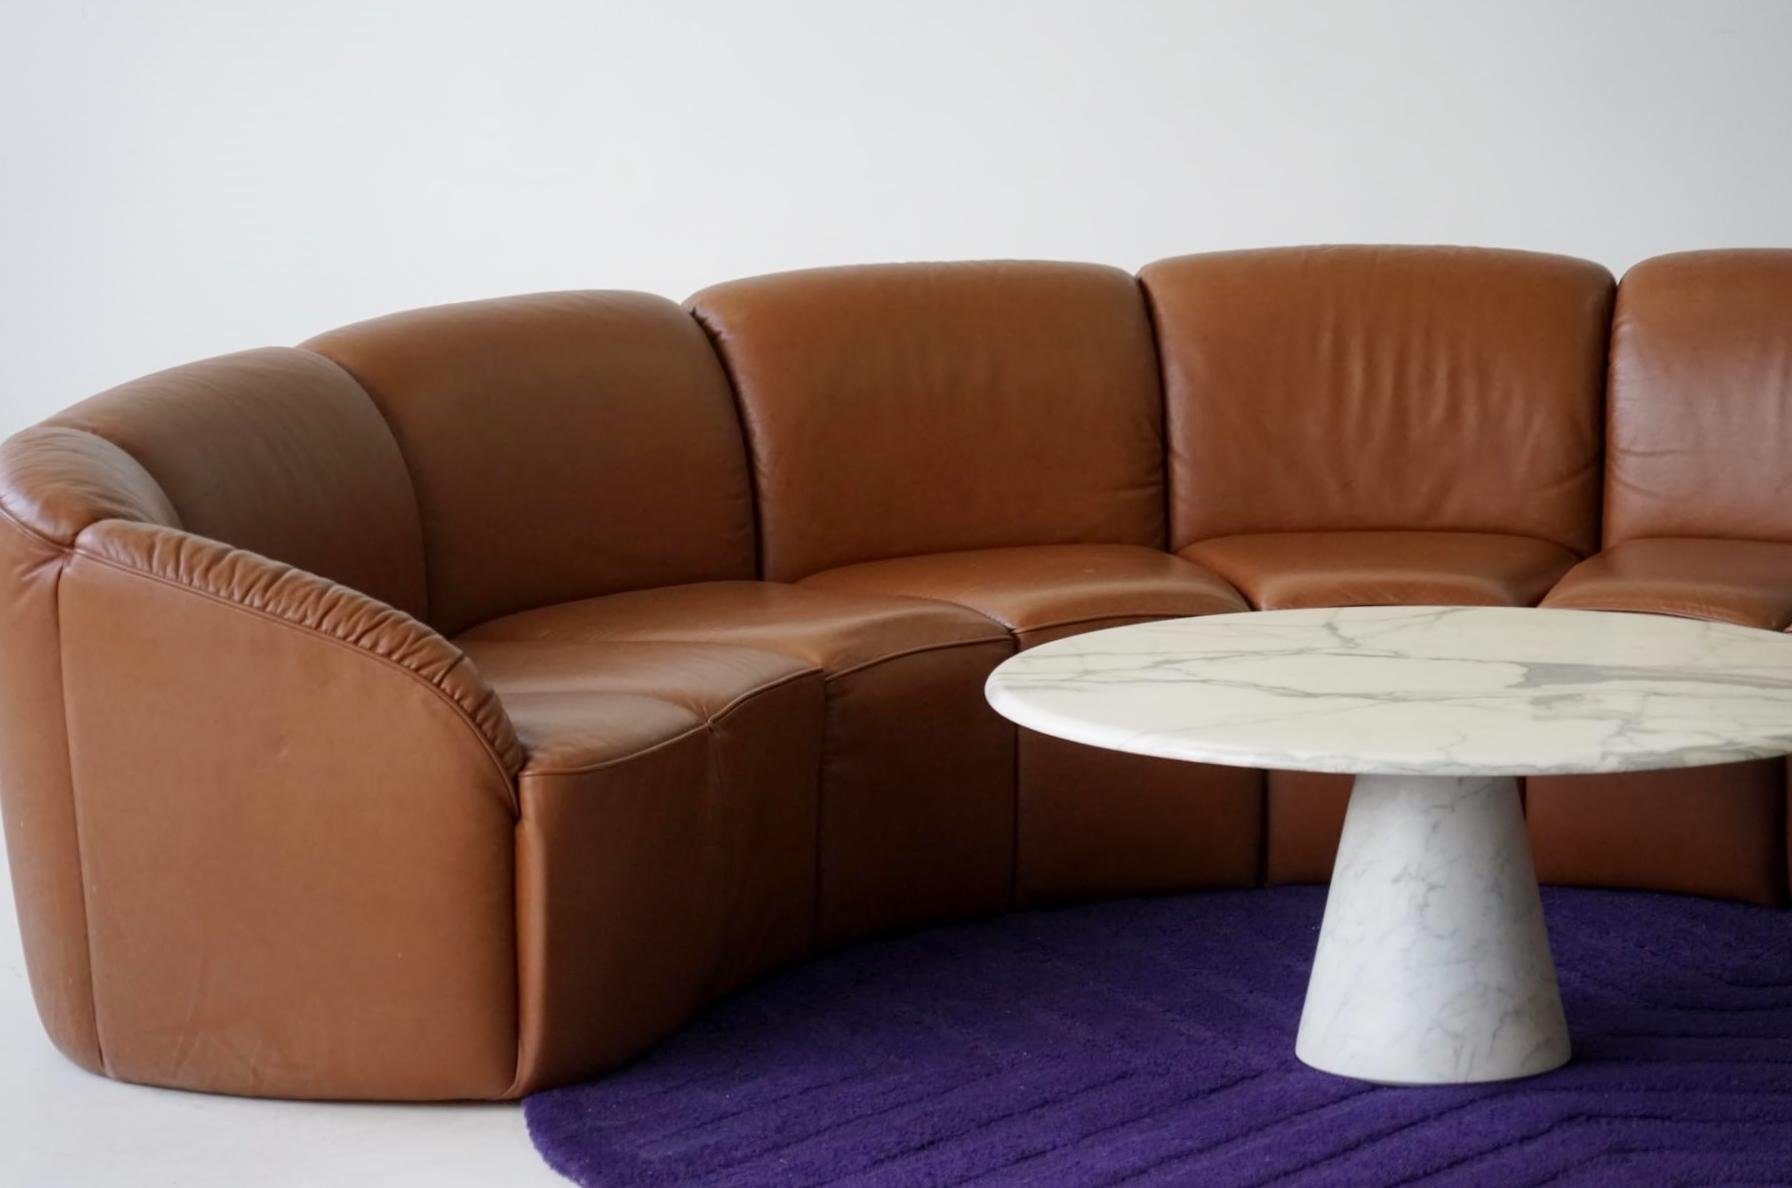 vintage curved leather sofa by walter knoll 1960s